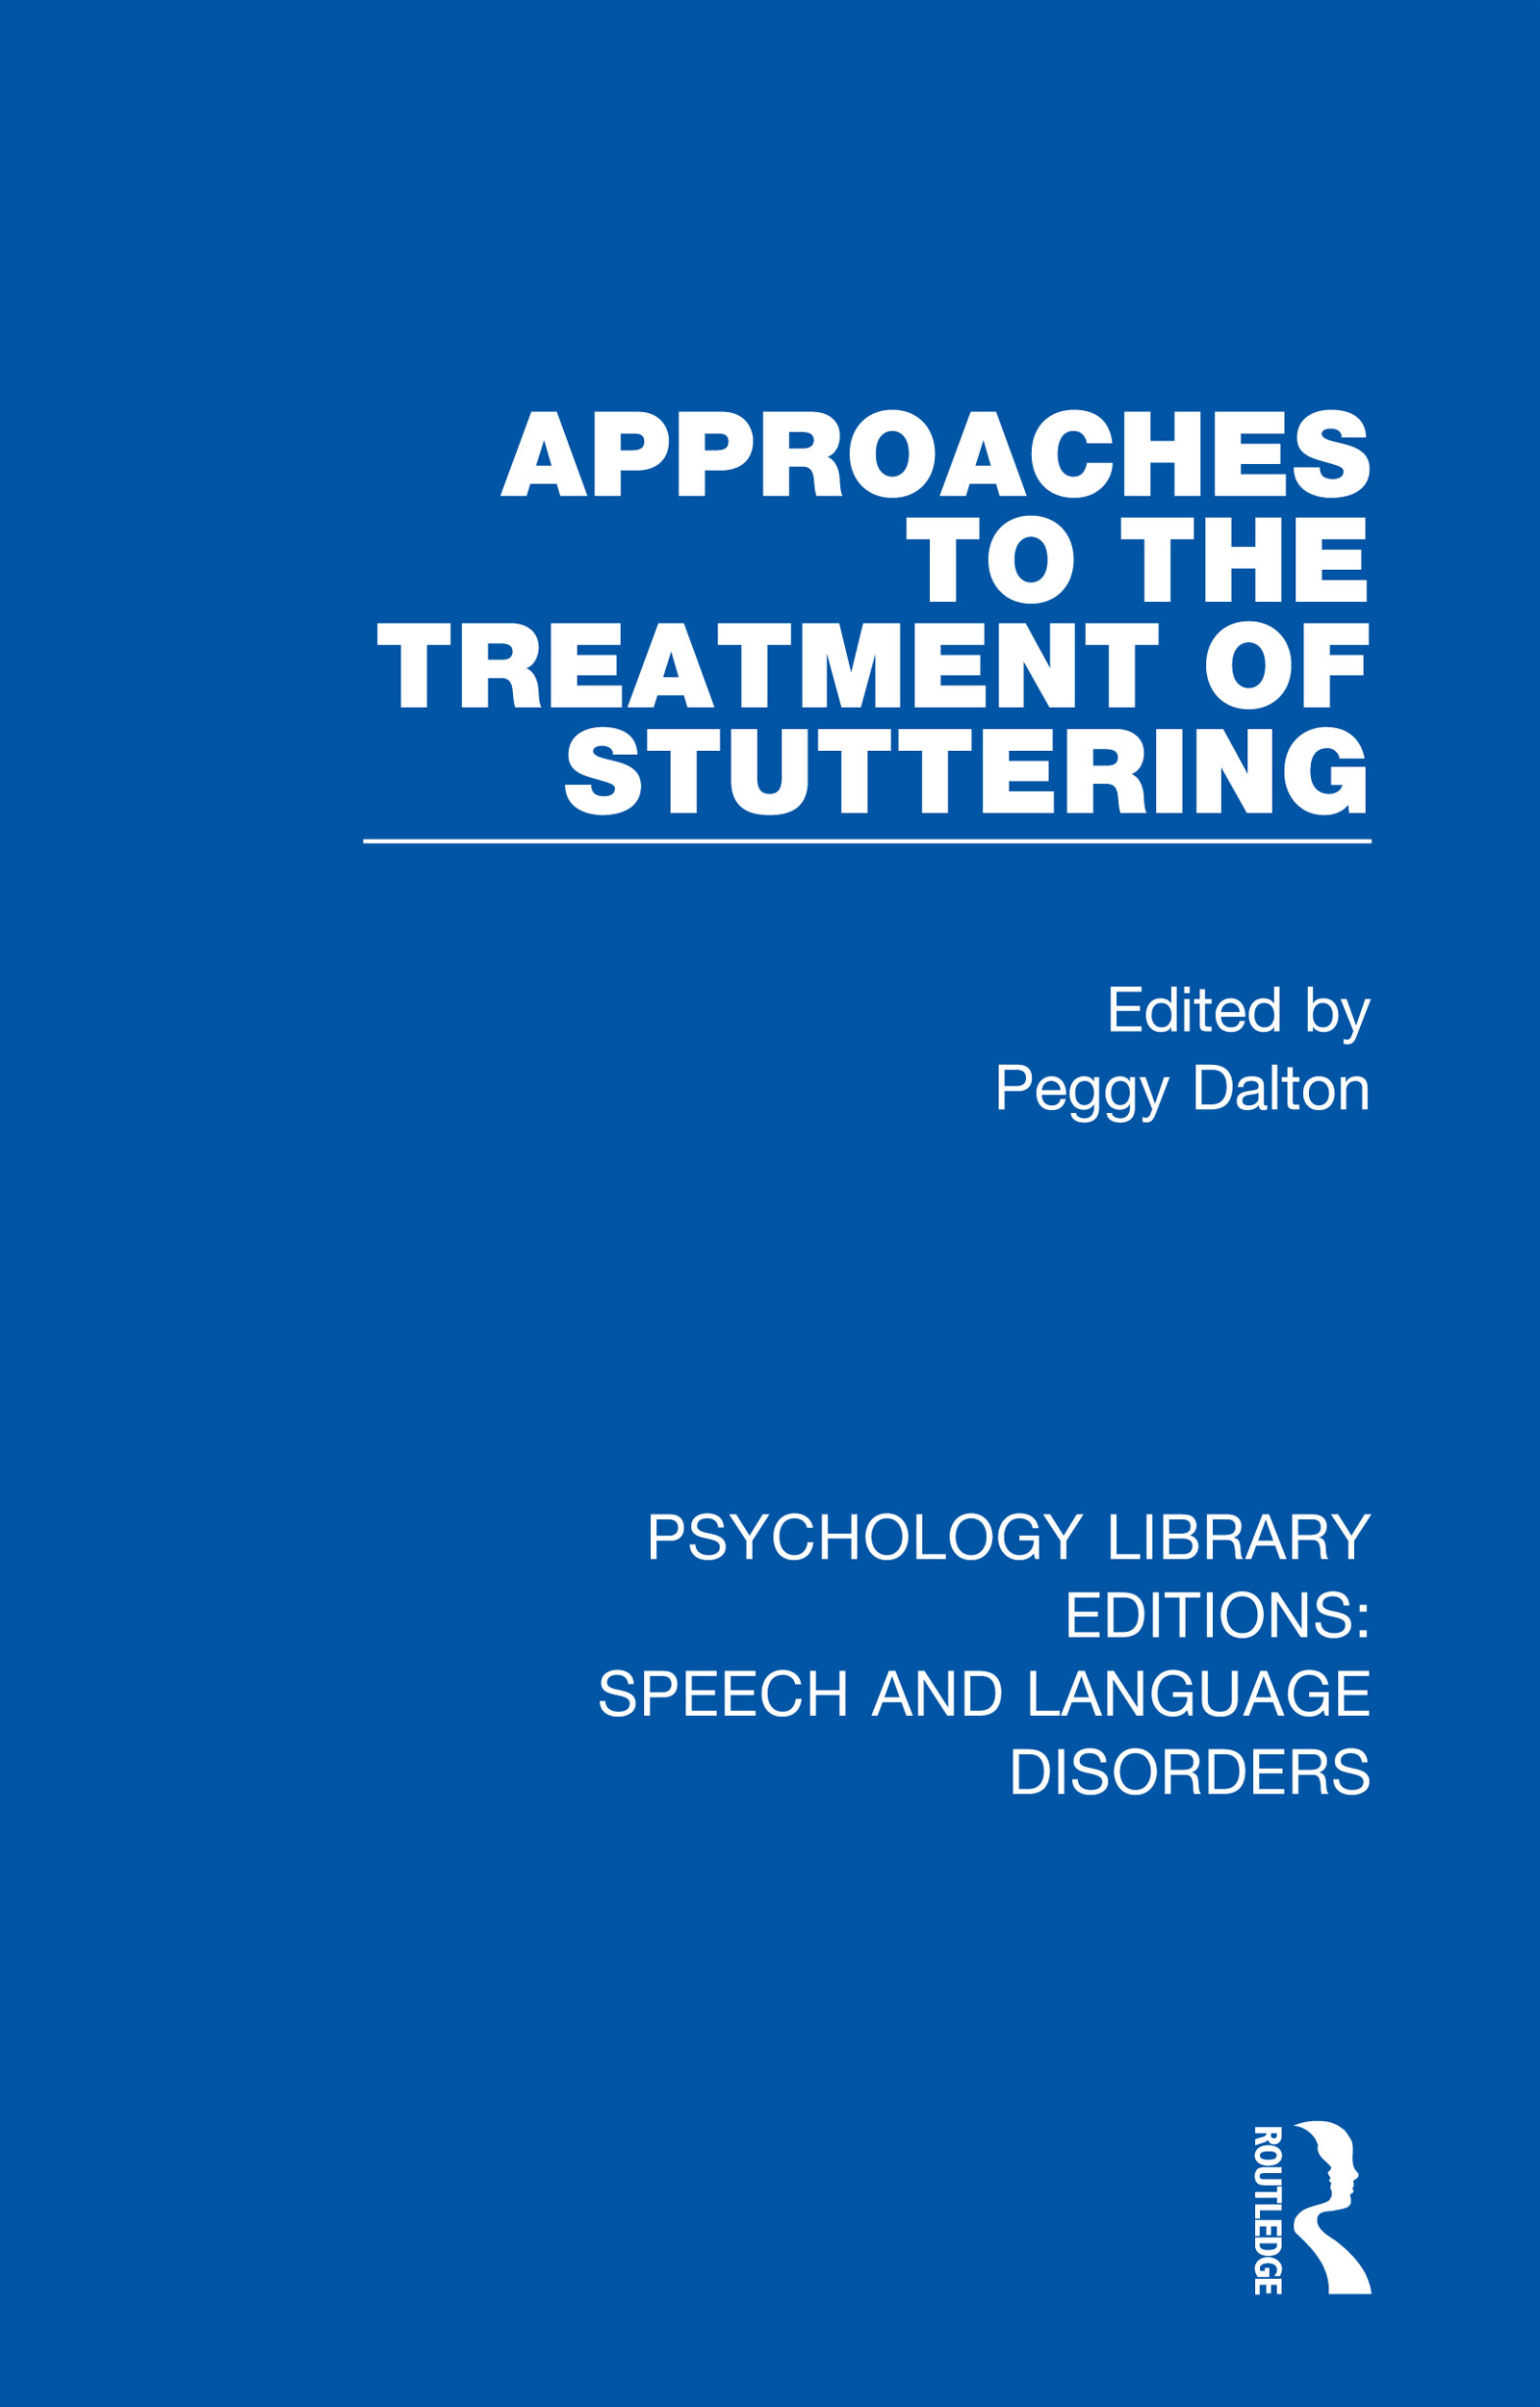 Approaches to the Treatment of Stuttering